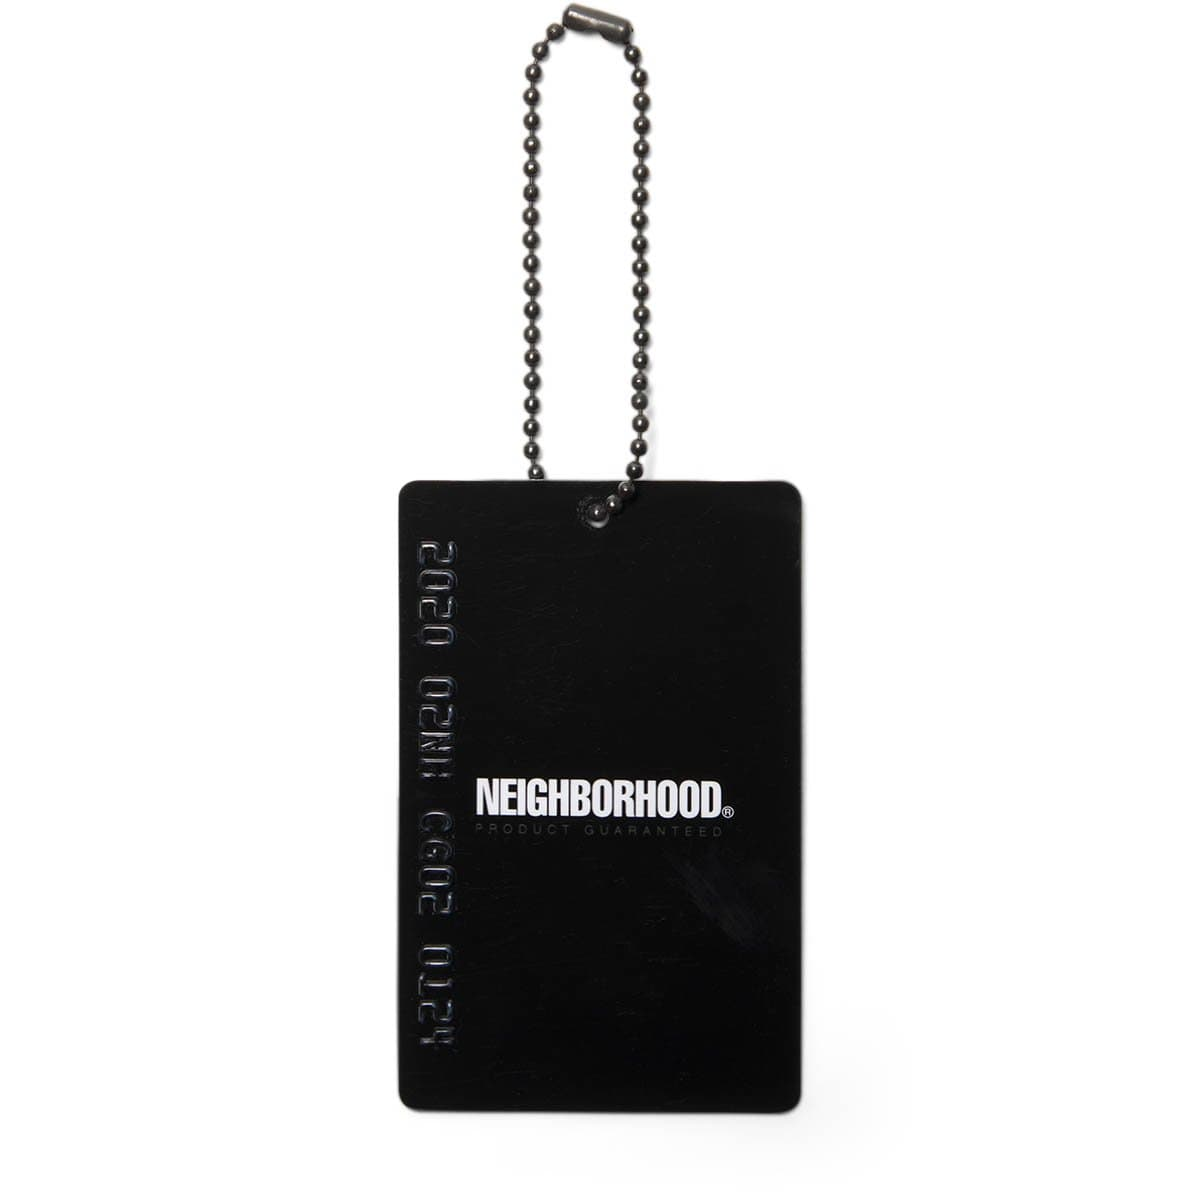 Neighborhood Bags & Accessories BLACK / O/S NHPT . TOTE / E-LUGGAGE